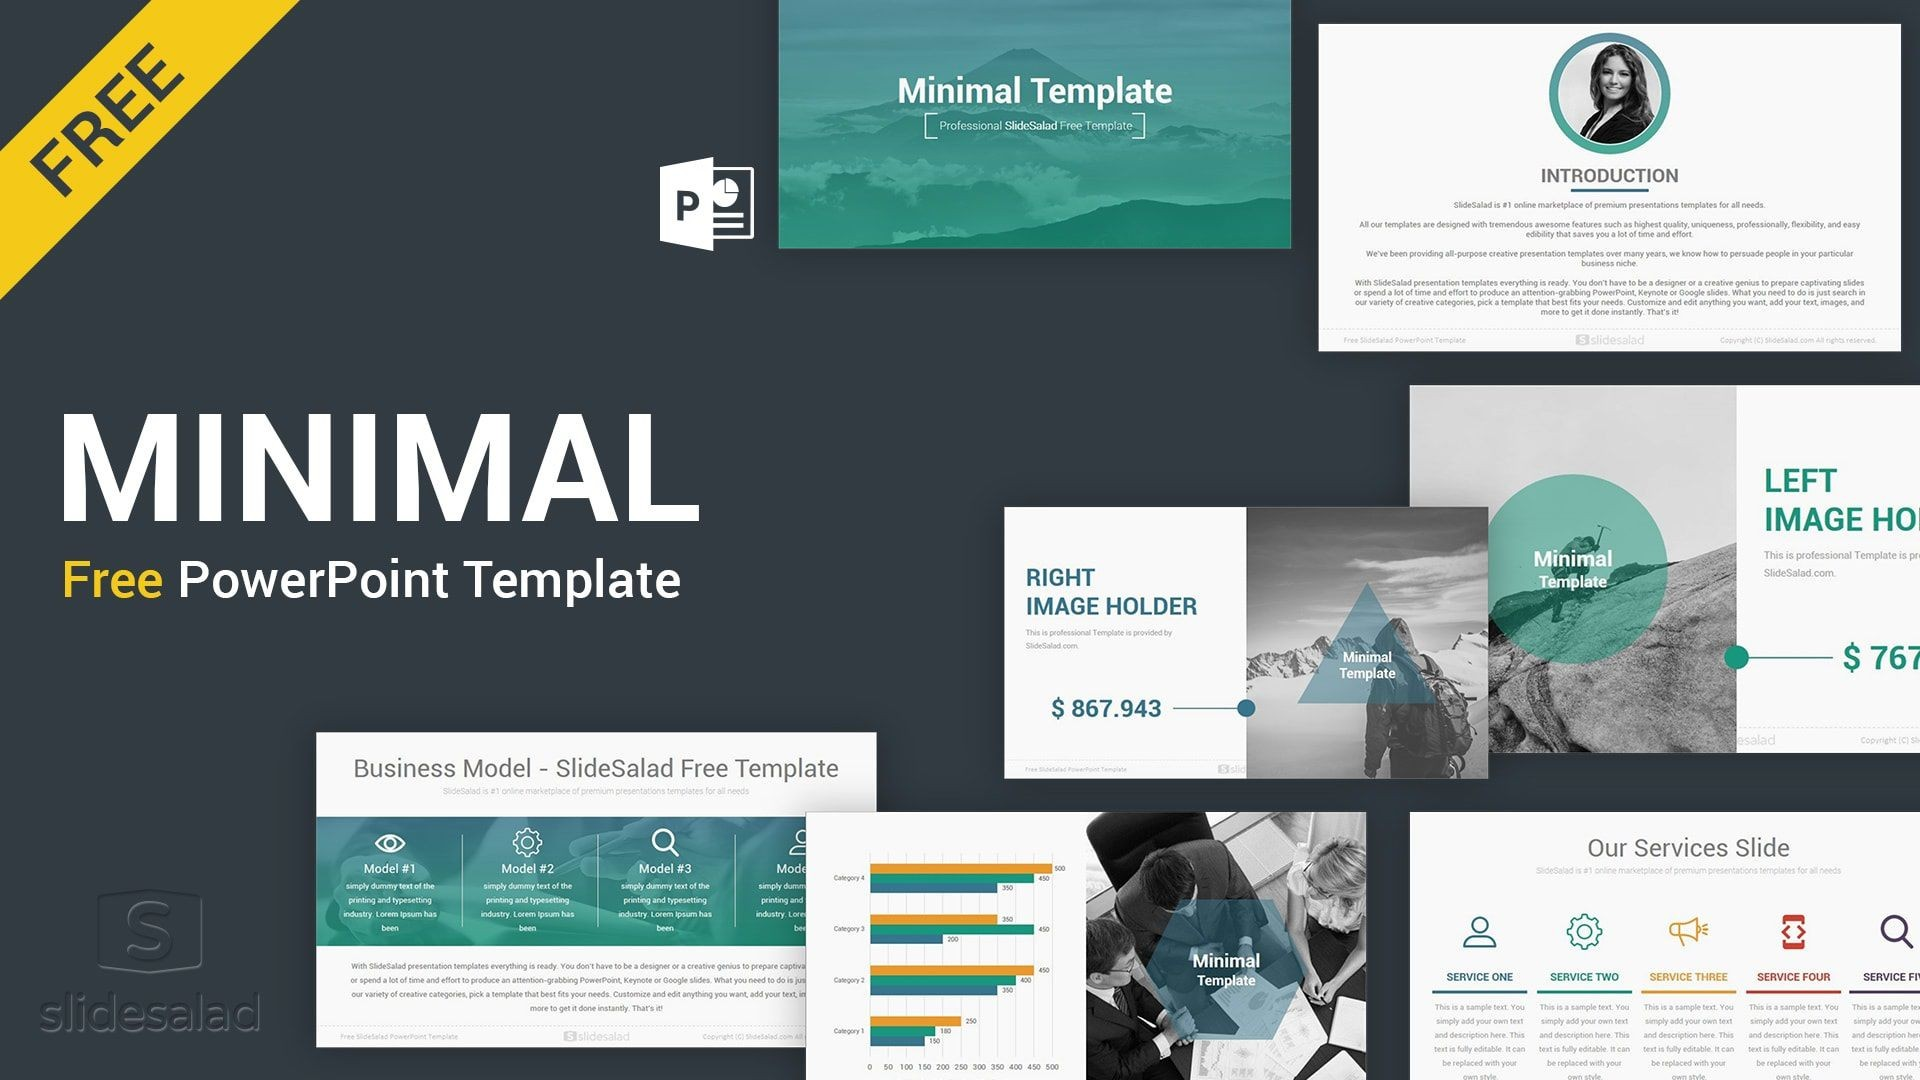 006 Formidable Powerpoint Presentation Format Free Download Highest Quality  Influencer Template Company Ppt Sample1920